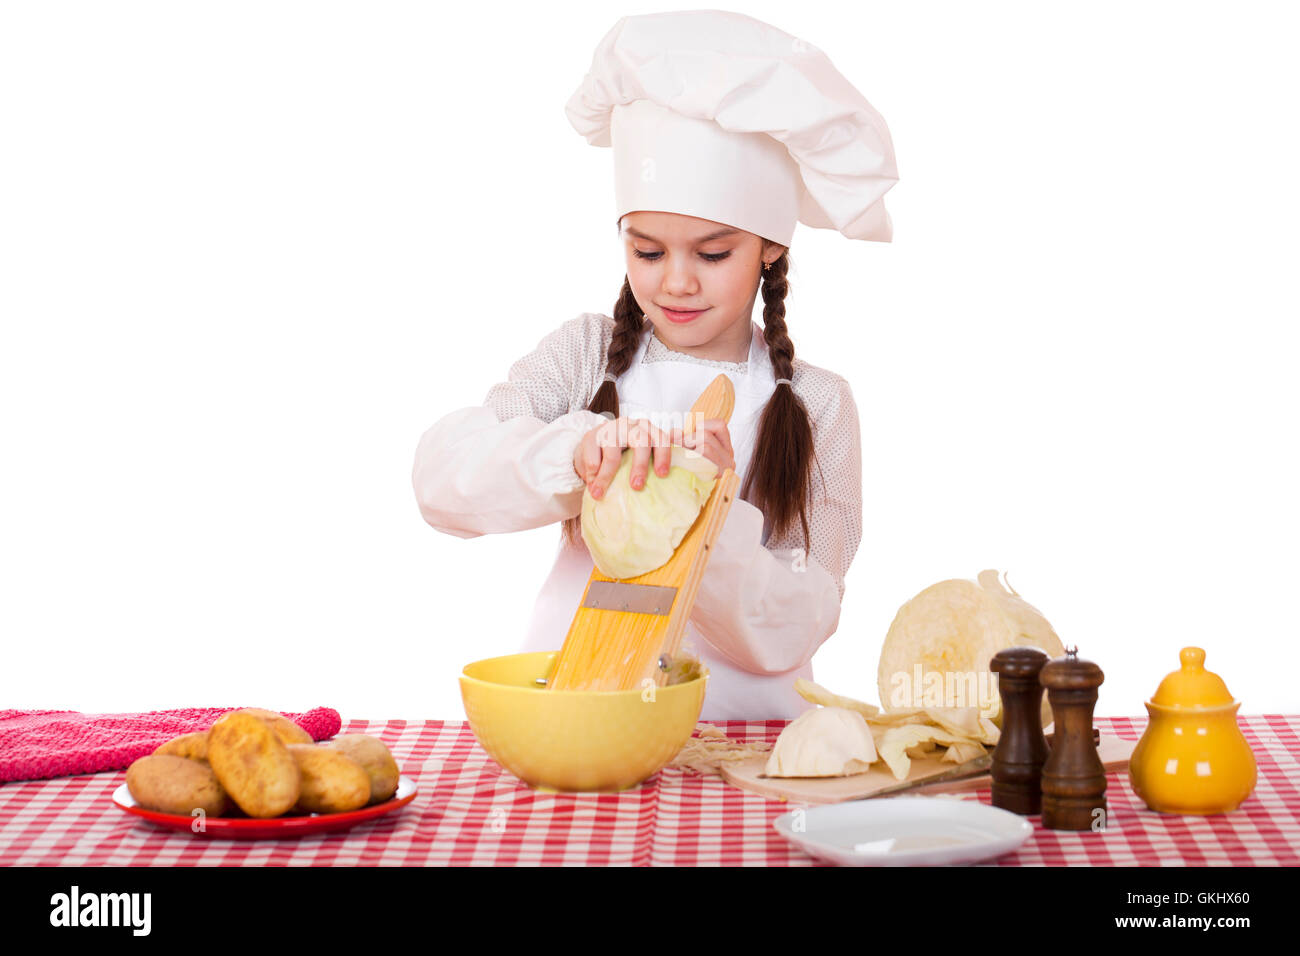 White apron food - Portrait Of A Little Girl In A White Apron And Chefs Hat Shred Cabbage In The Kitchen Isolated On White Background